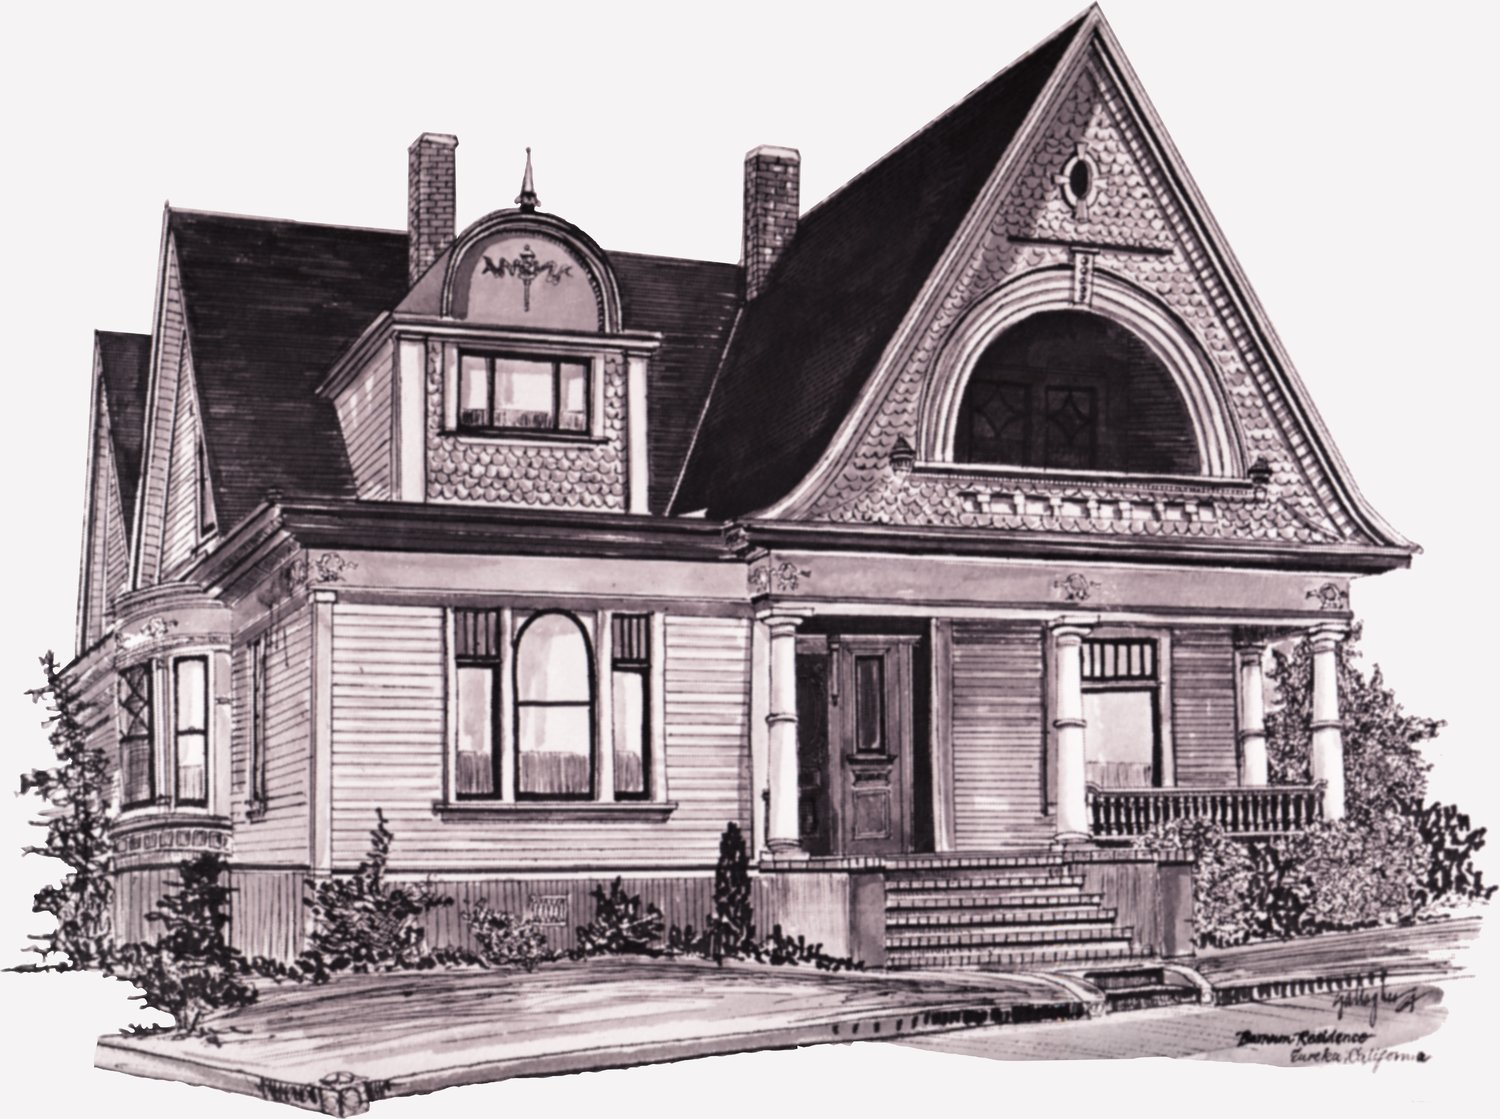 Humboldt County Historical Society